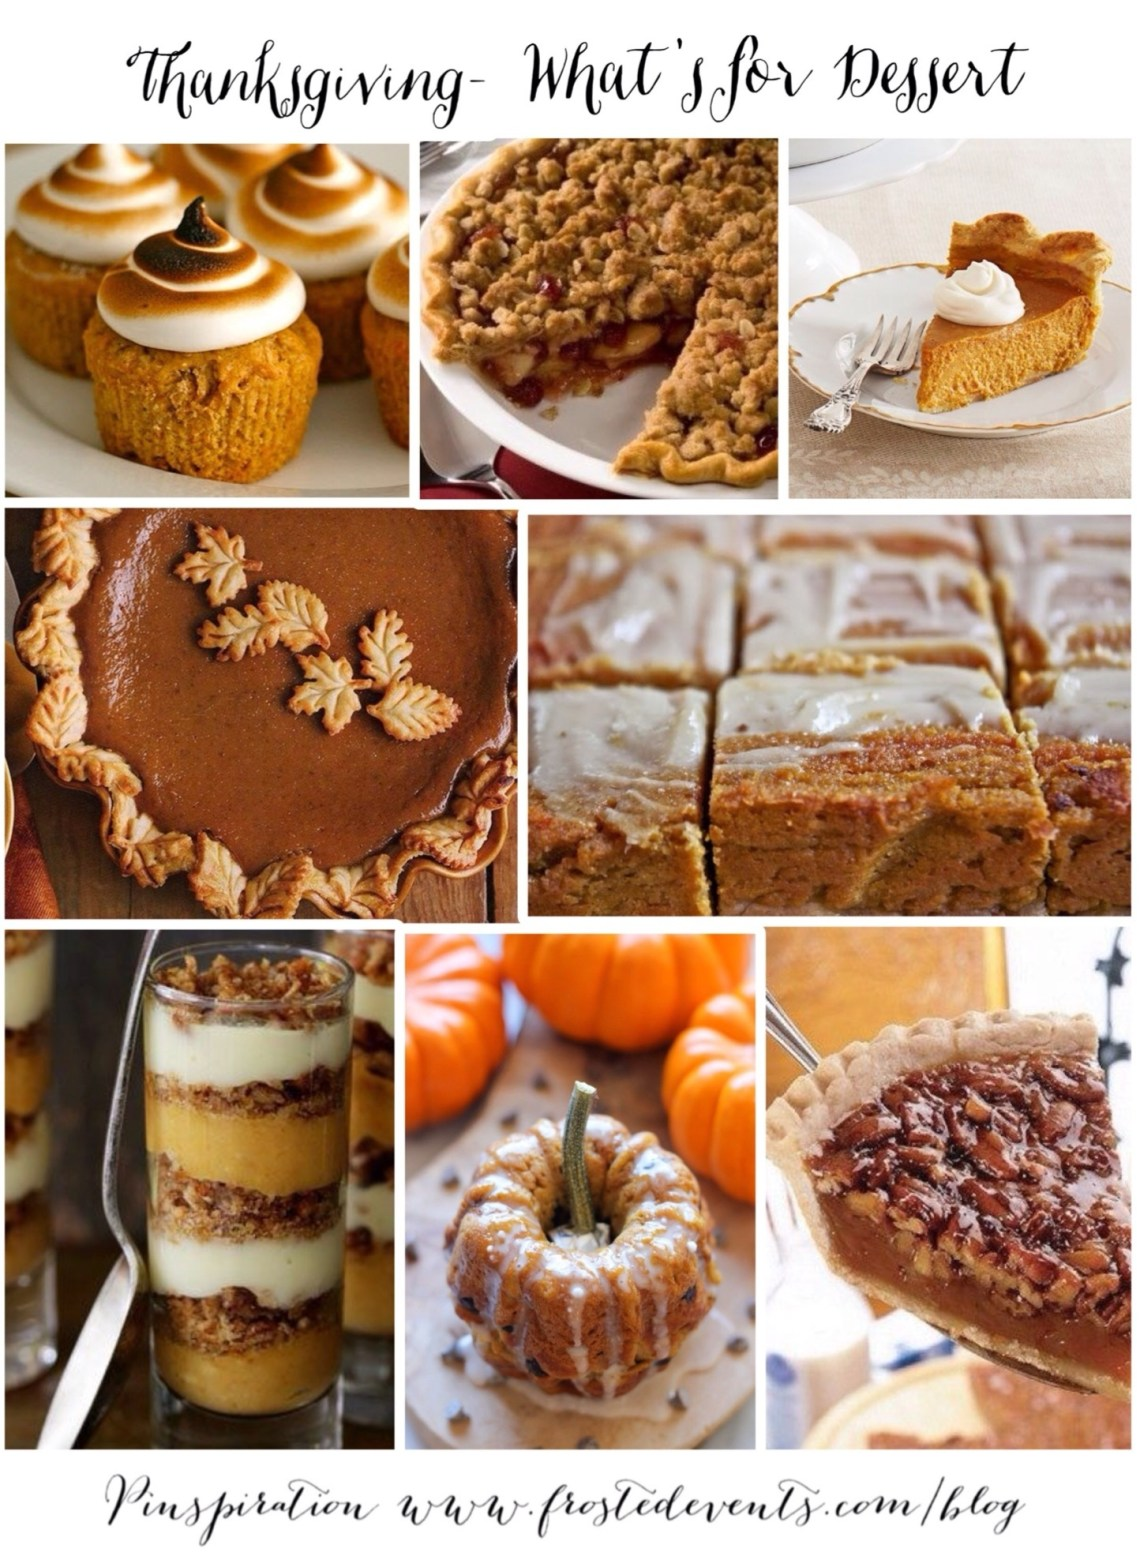 Thanksgiving Dessert Recipe Ideas and Inspiration  www.frostedevents.com Favorite Recipes